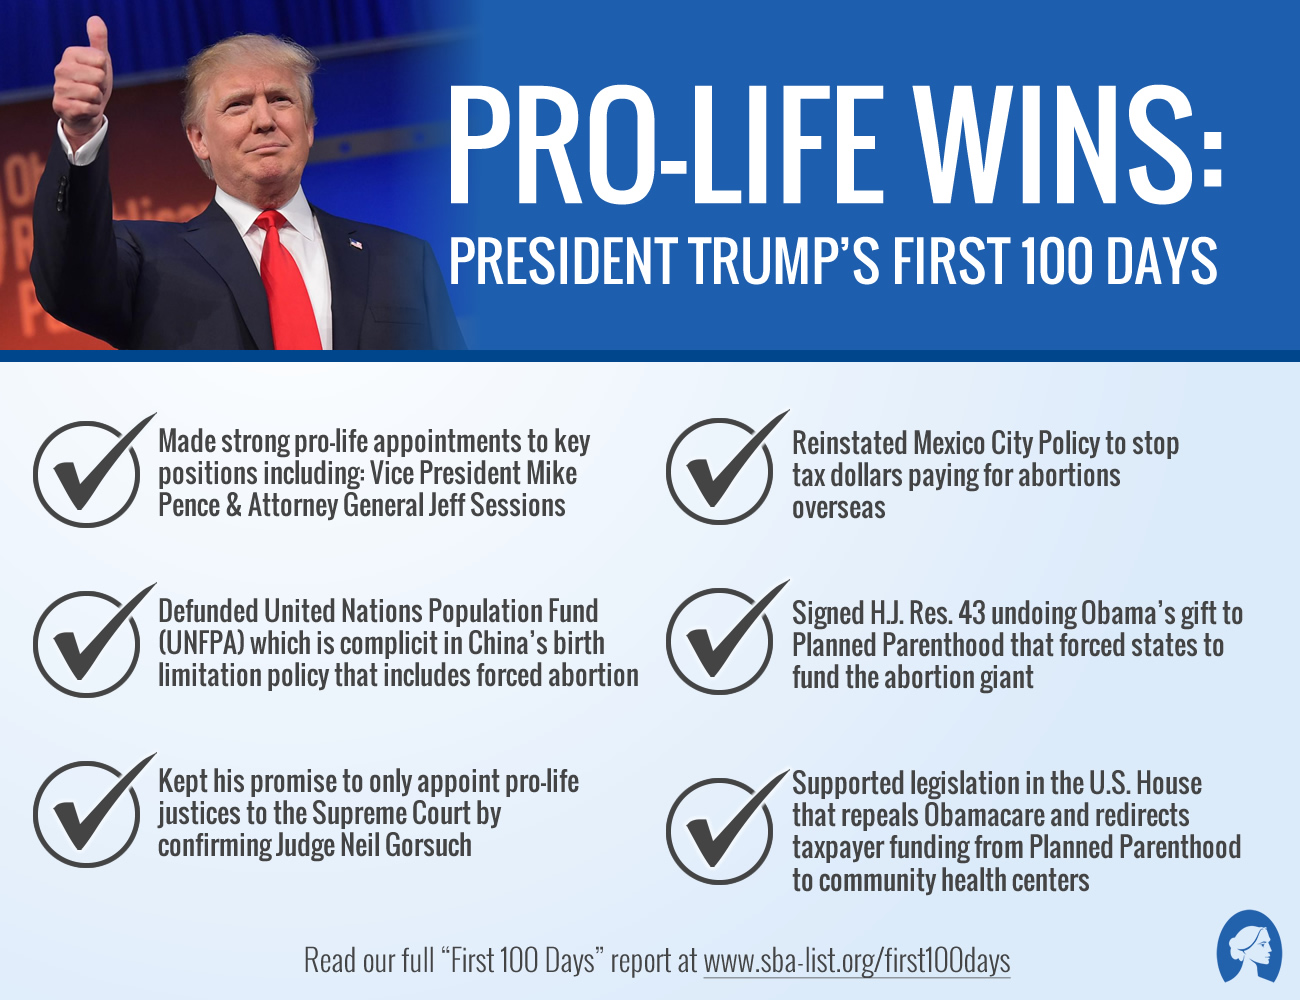 First 100 days of Donald Trump's presidency